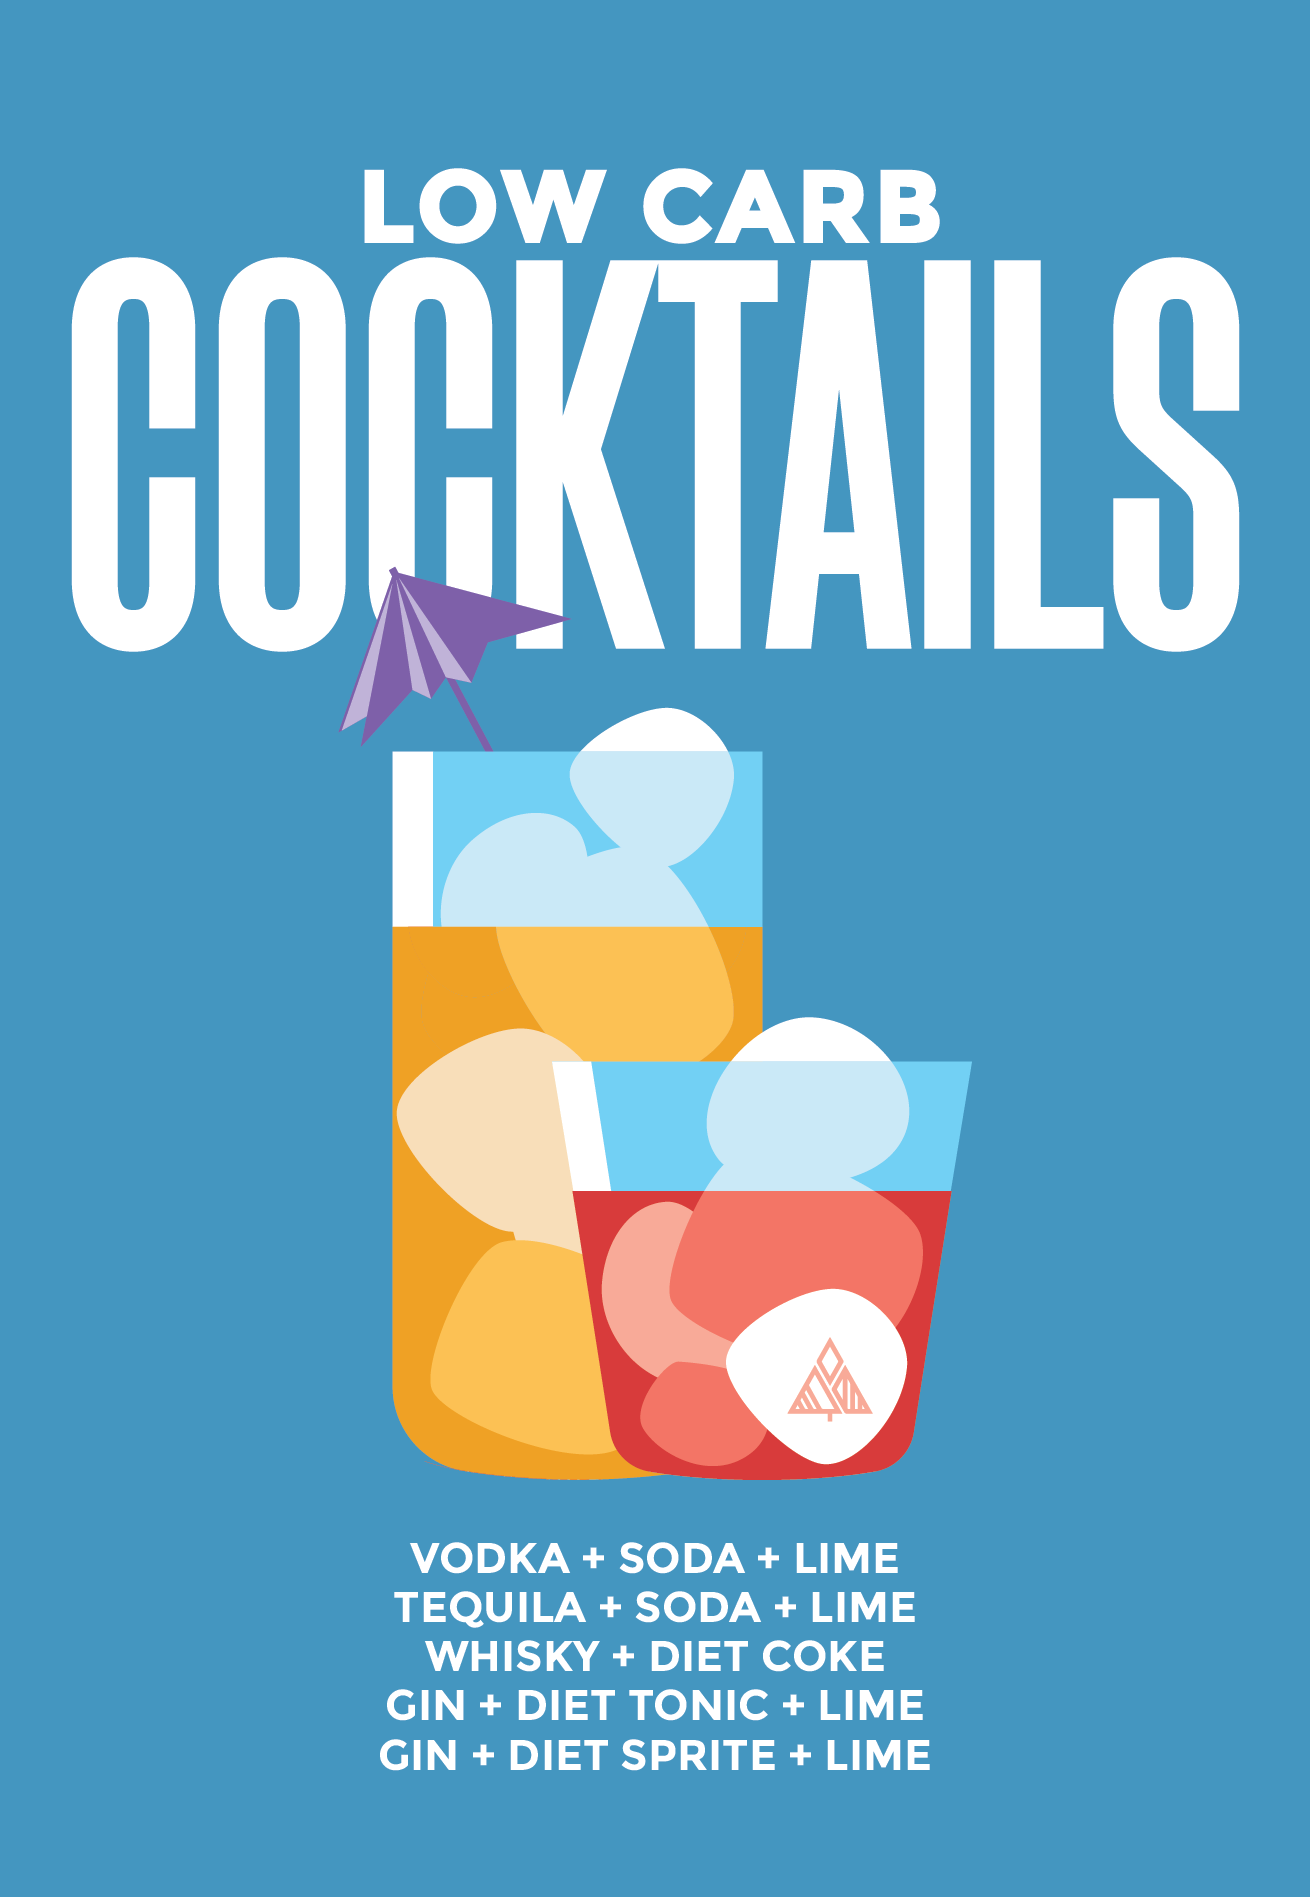 a list of low carb cocktail options graphic